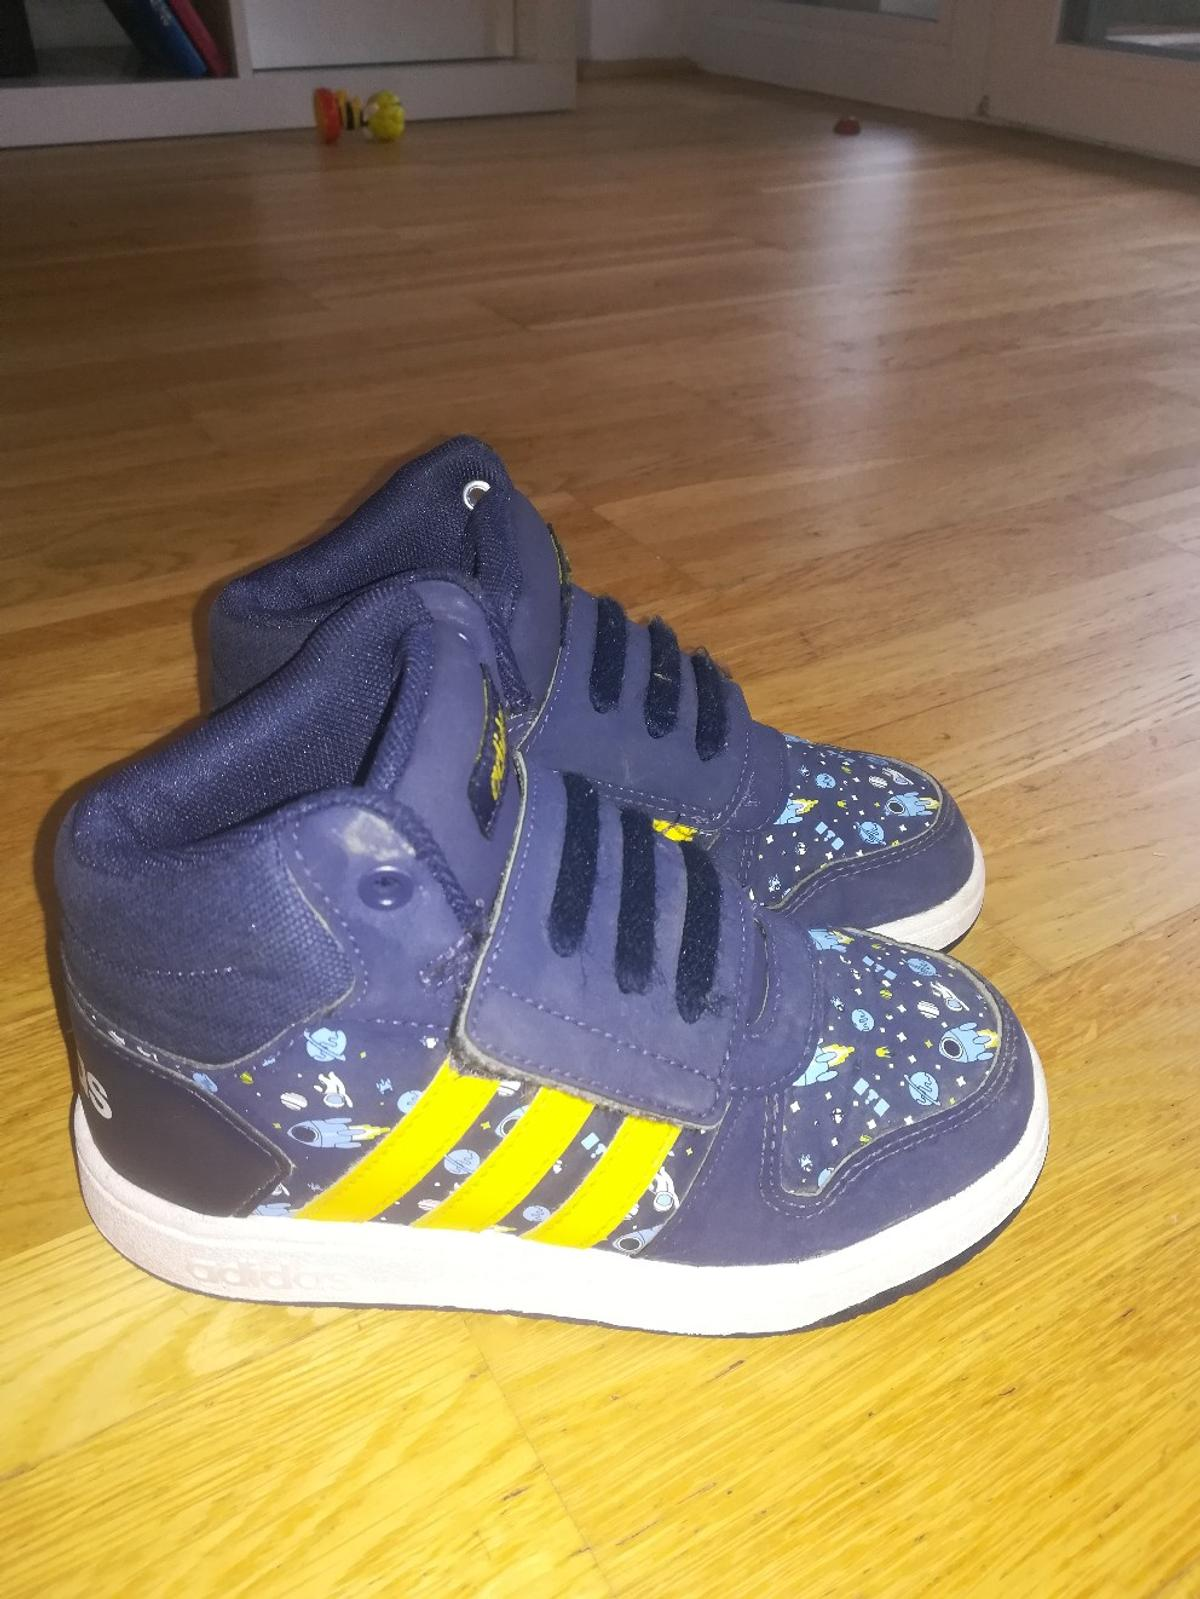 saleShpock Adidas Linz 27 €12 for 00 hoops in for Linz sQhrCtd